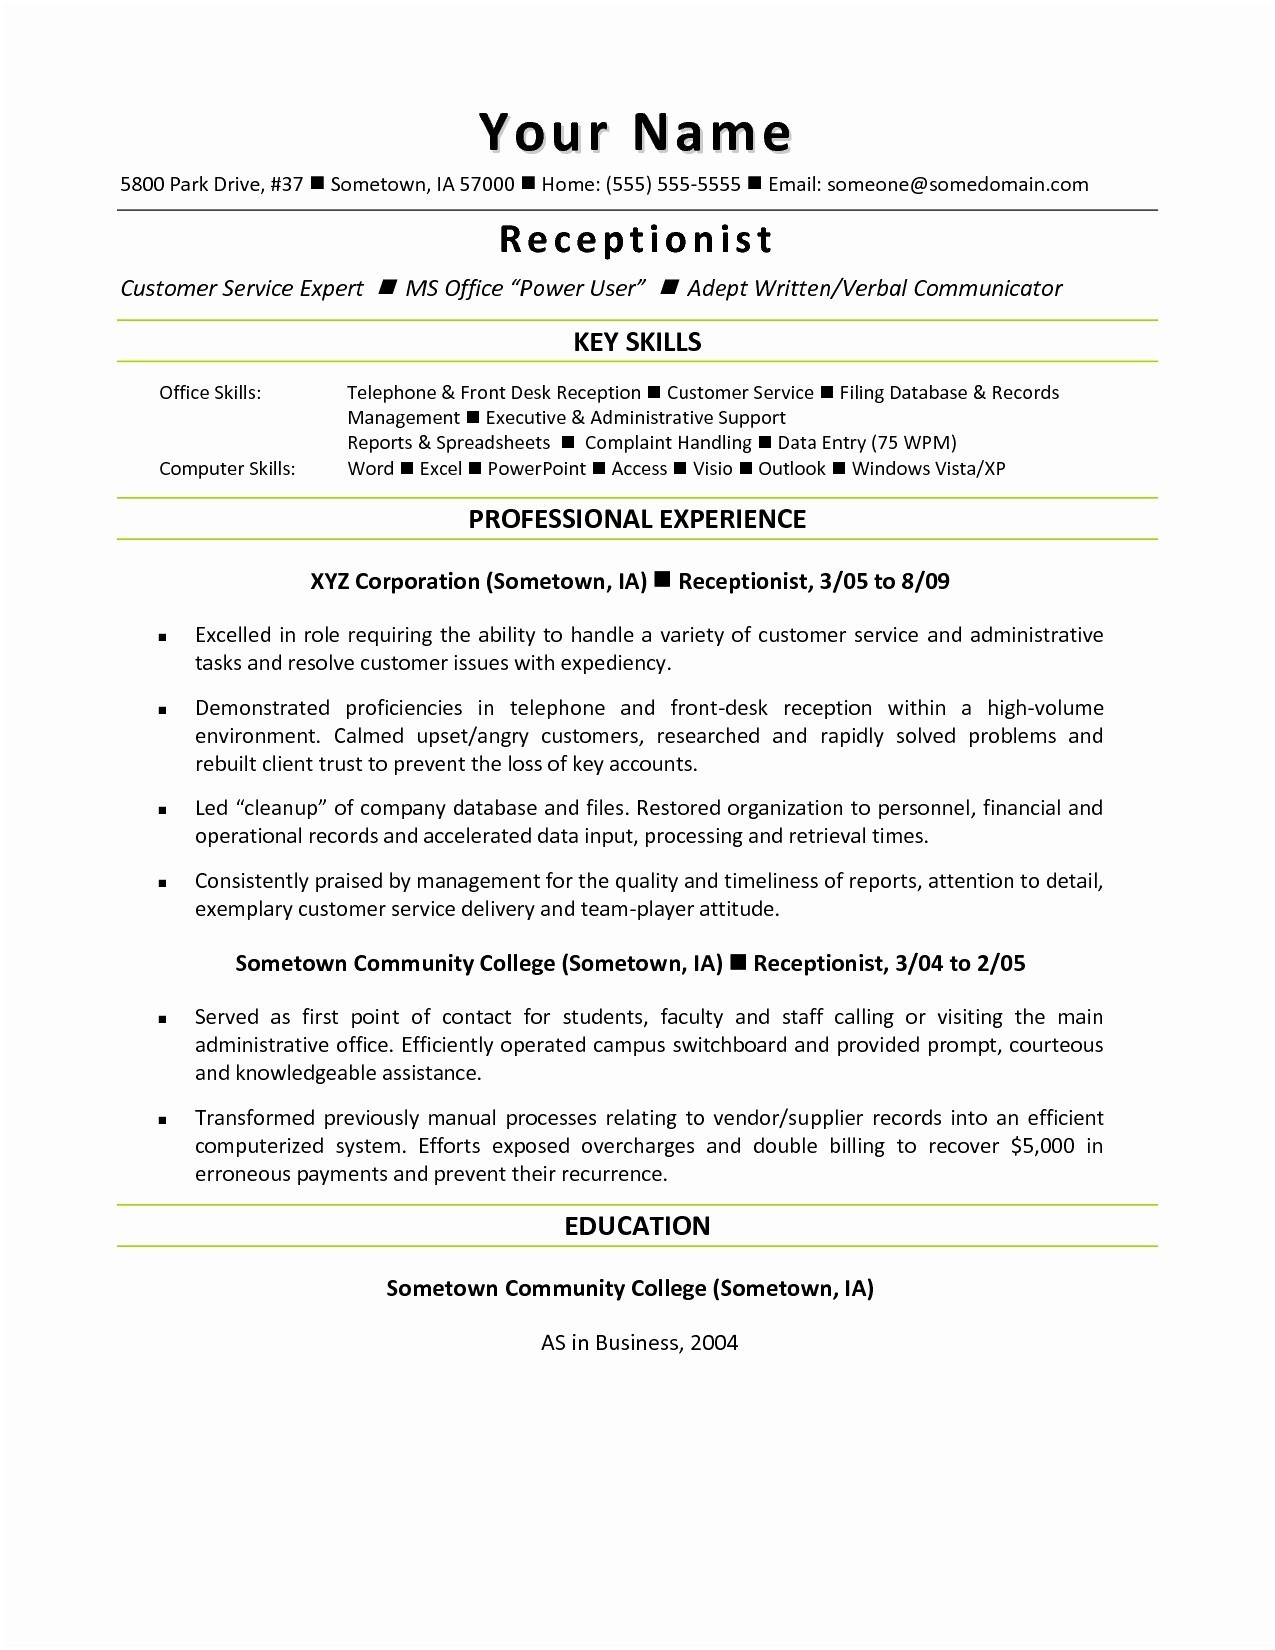 Microsoft Word Letter Of Recommendation Template - Resume Microsoft Word Fresh Resume Mail format Sample Fresh